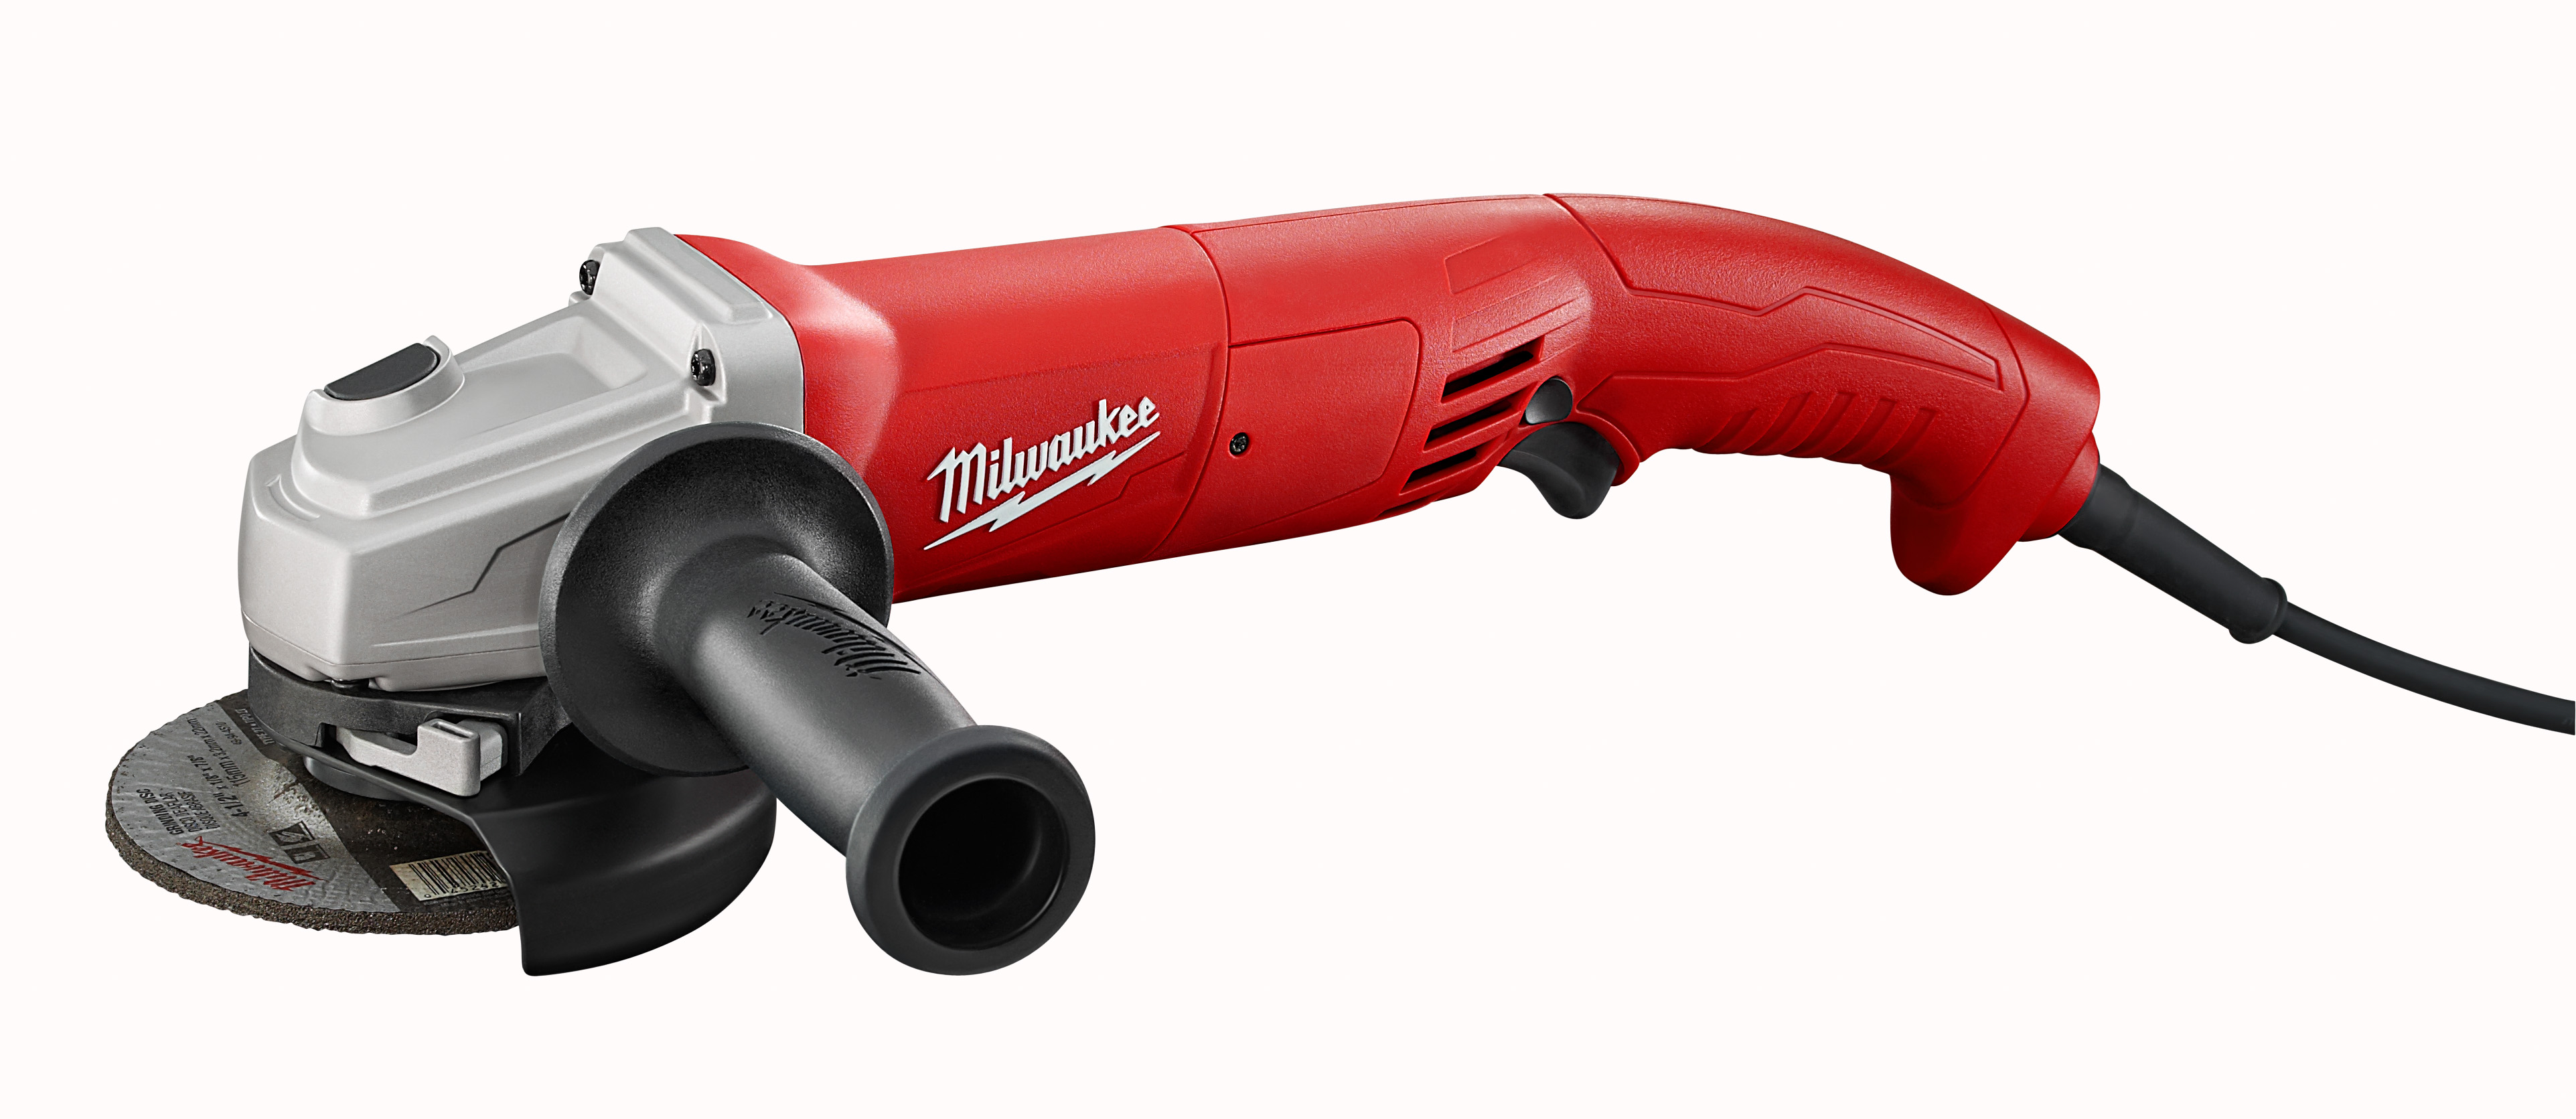 Milwaukee® 6121-31 Double Insulated Small Angle Grinder, 4-1/2 in Dia Wheel, 5/8-11 UNC Arbor/Shank, 120 VAC, Black/Red/Silver